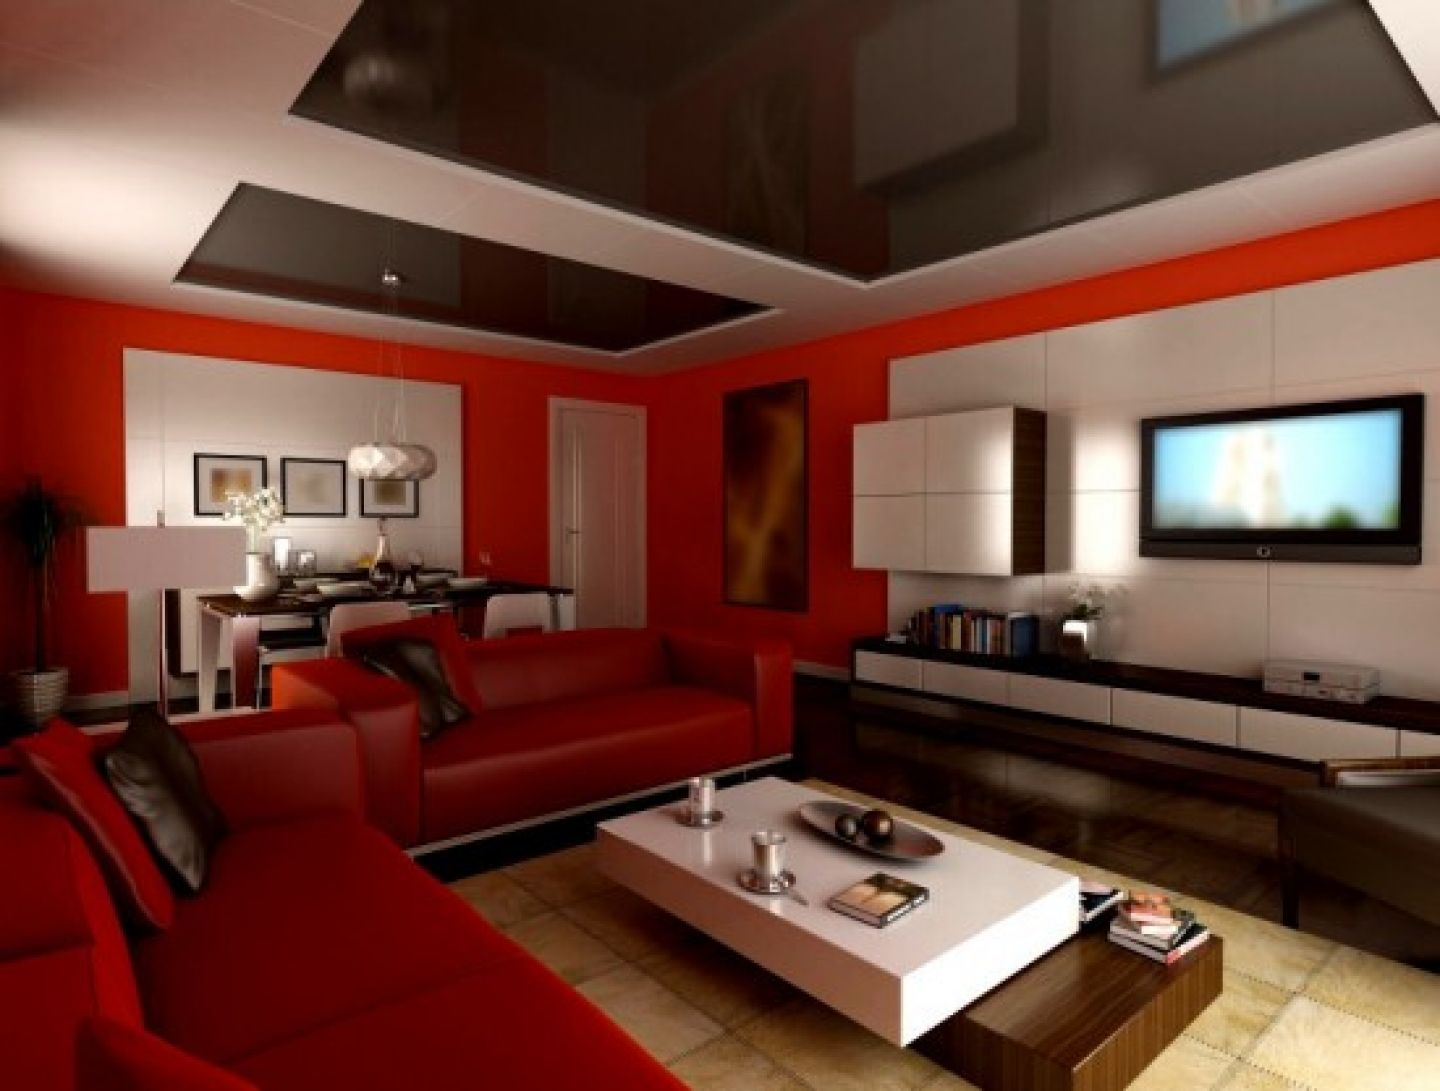 Wall Paints For Living Room Design Living Room Paint Colors Ideas Modern Red White Living Room